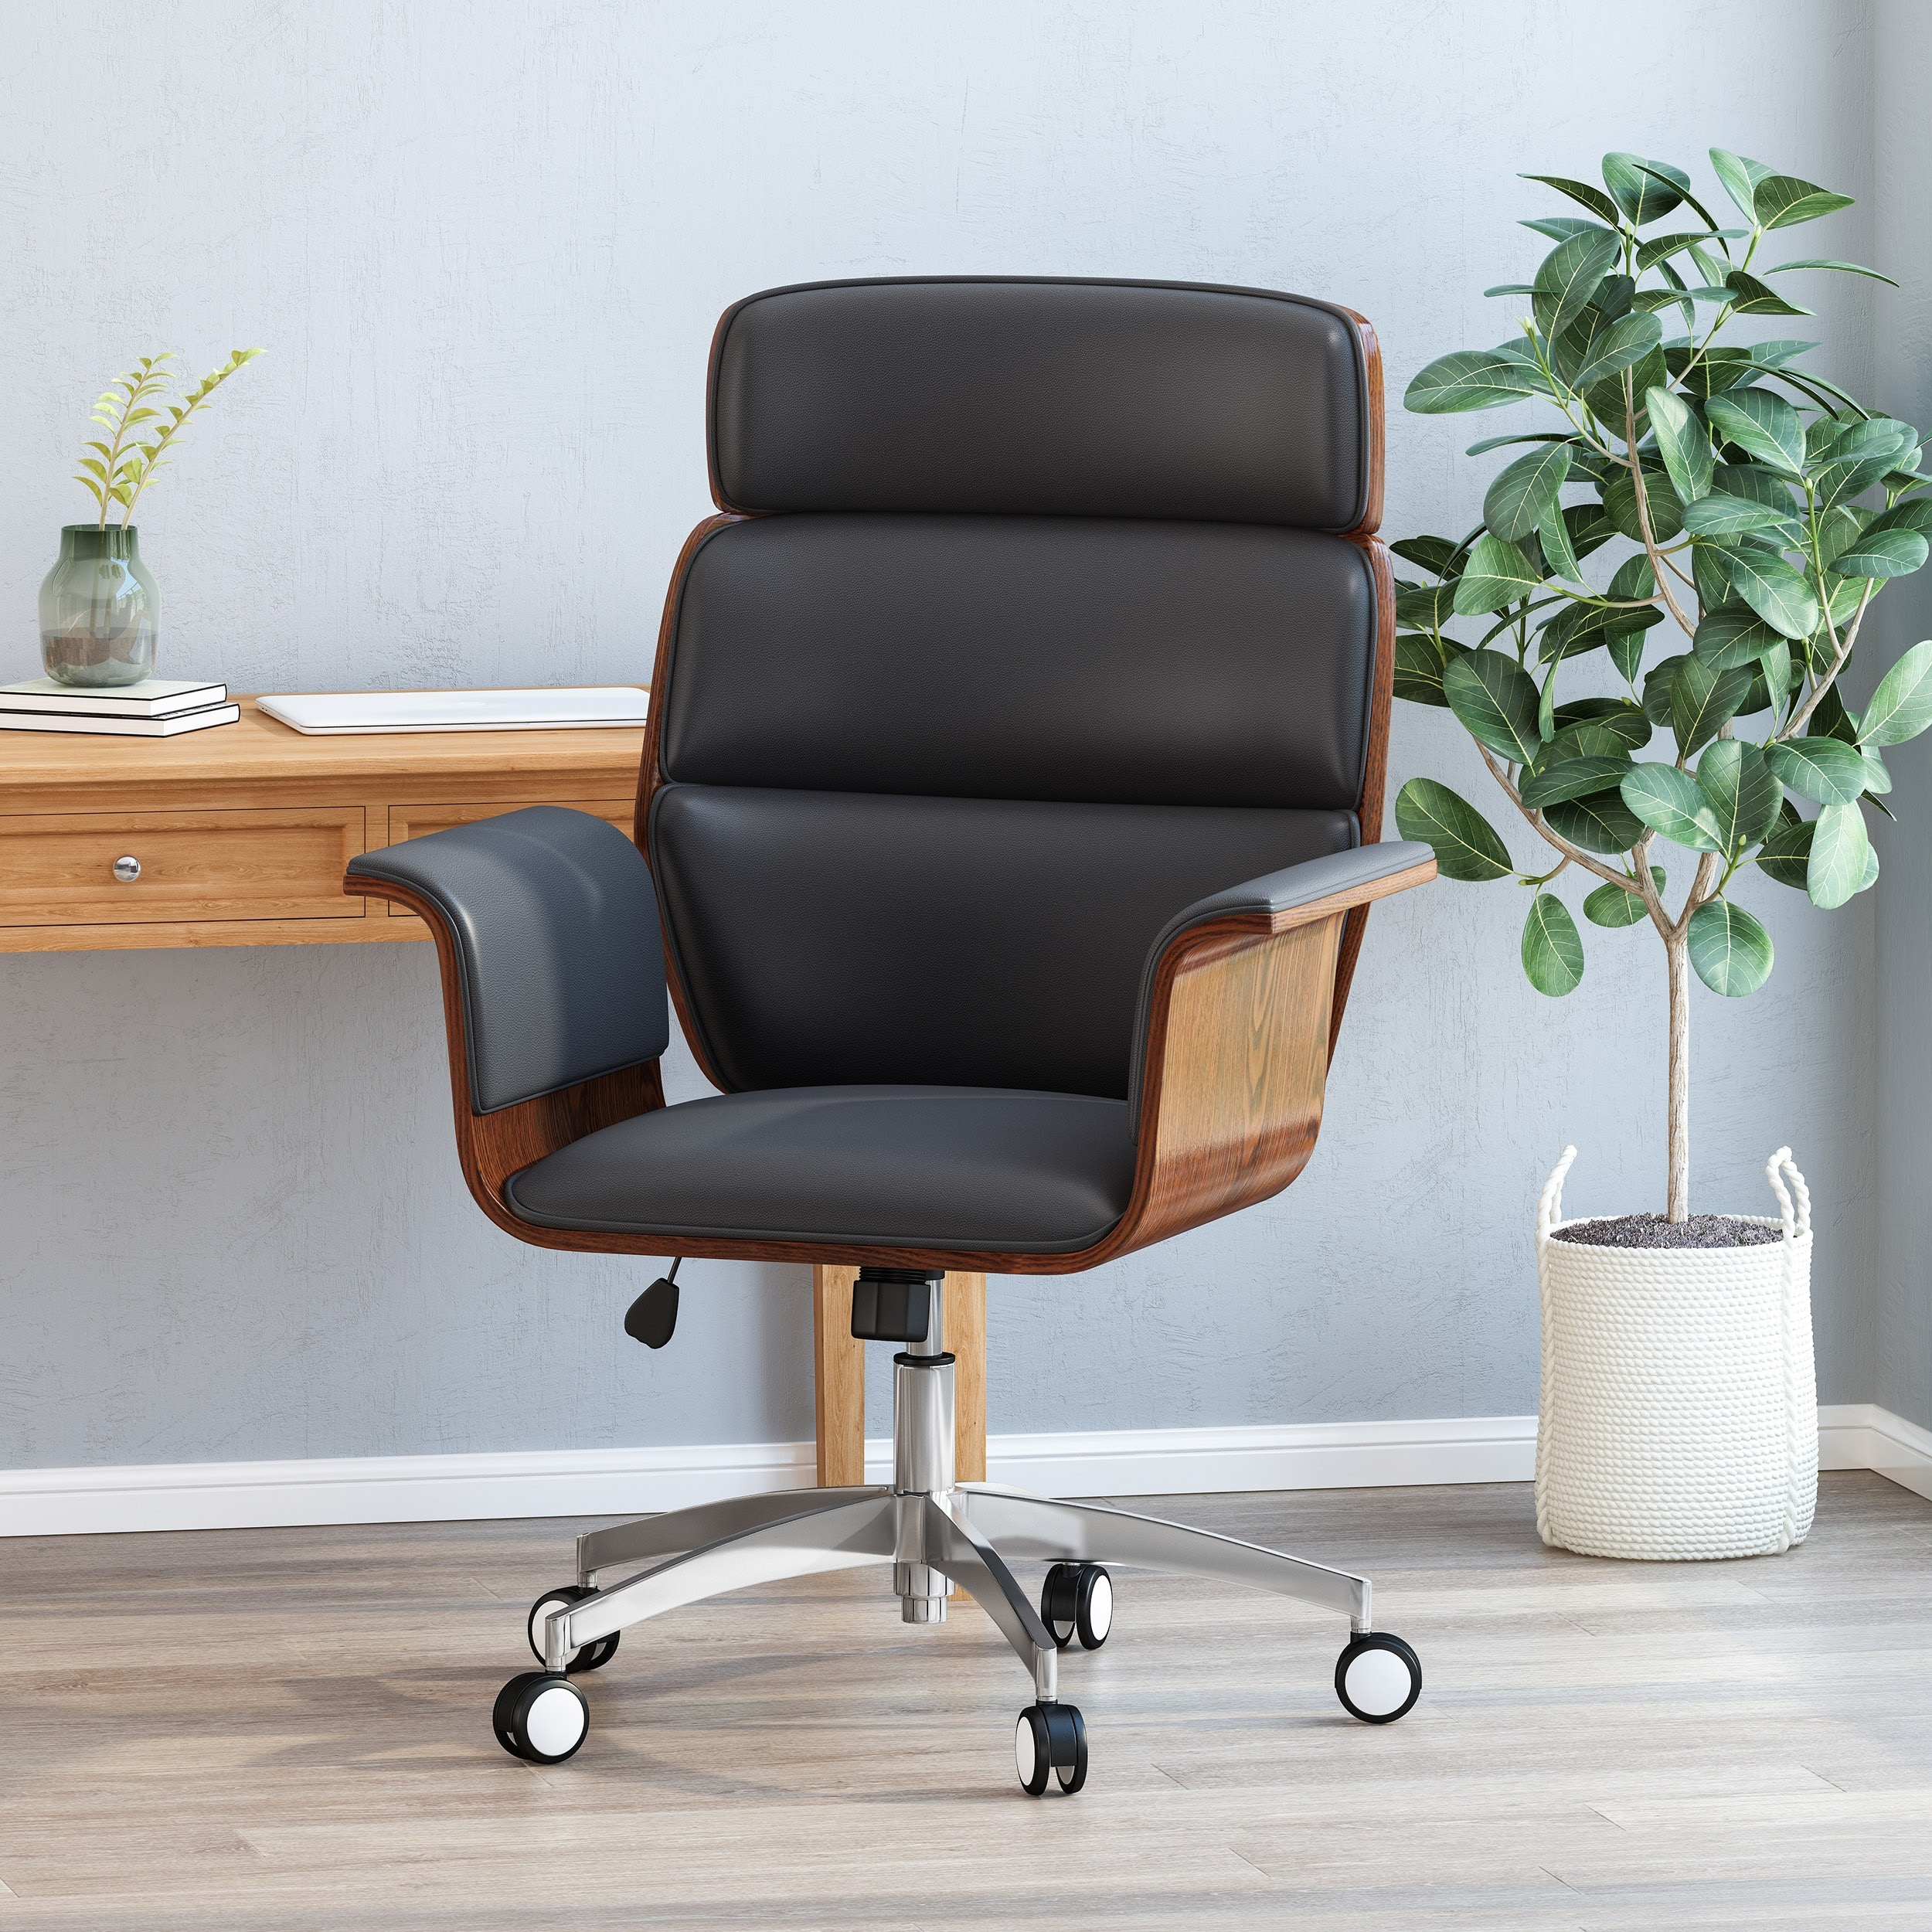 Image of: Shop Black Friday Deals On Cannonade Mid Century Modern Swivel Office Chair By Christopher Knight Home Overstock 31914200